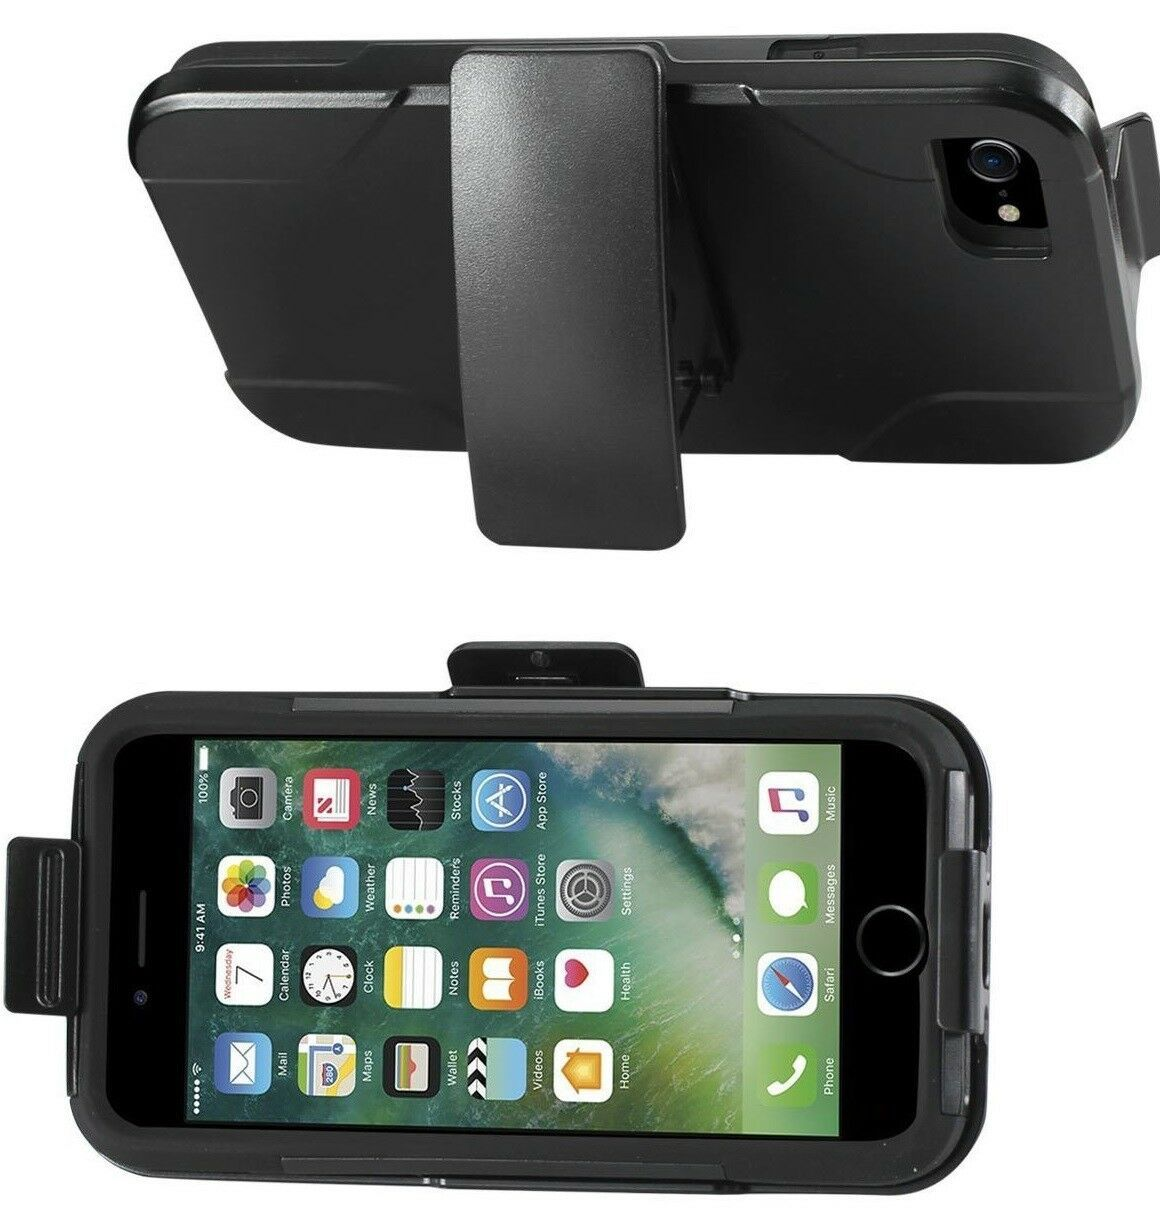 Reiko Iphone 7 Hybrid Case Heavy Duty Drop Proof Dual Protection Wireless Acces.